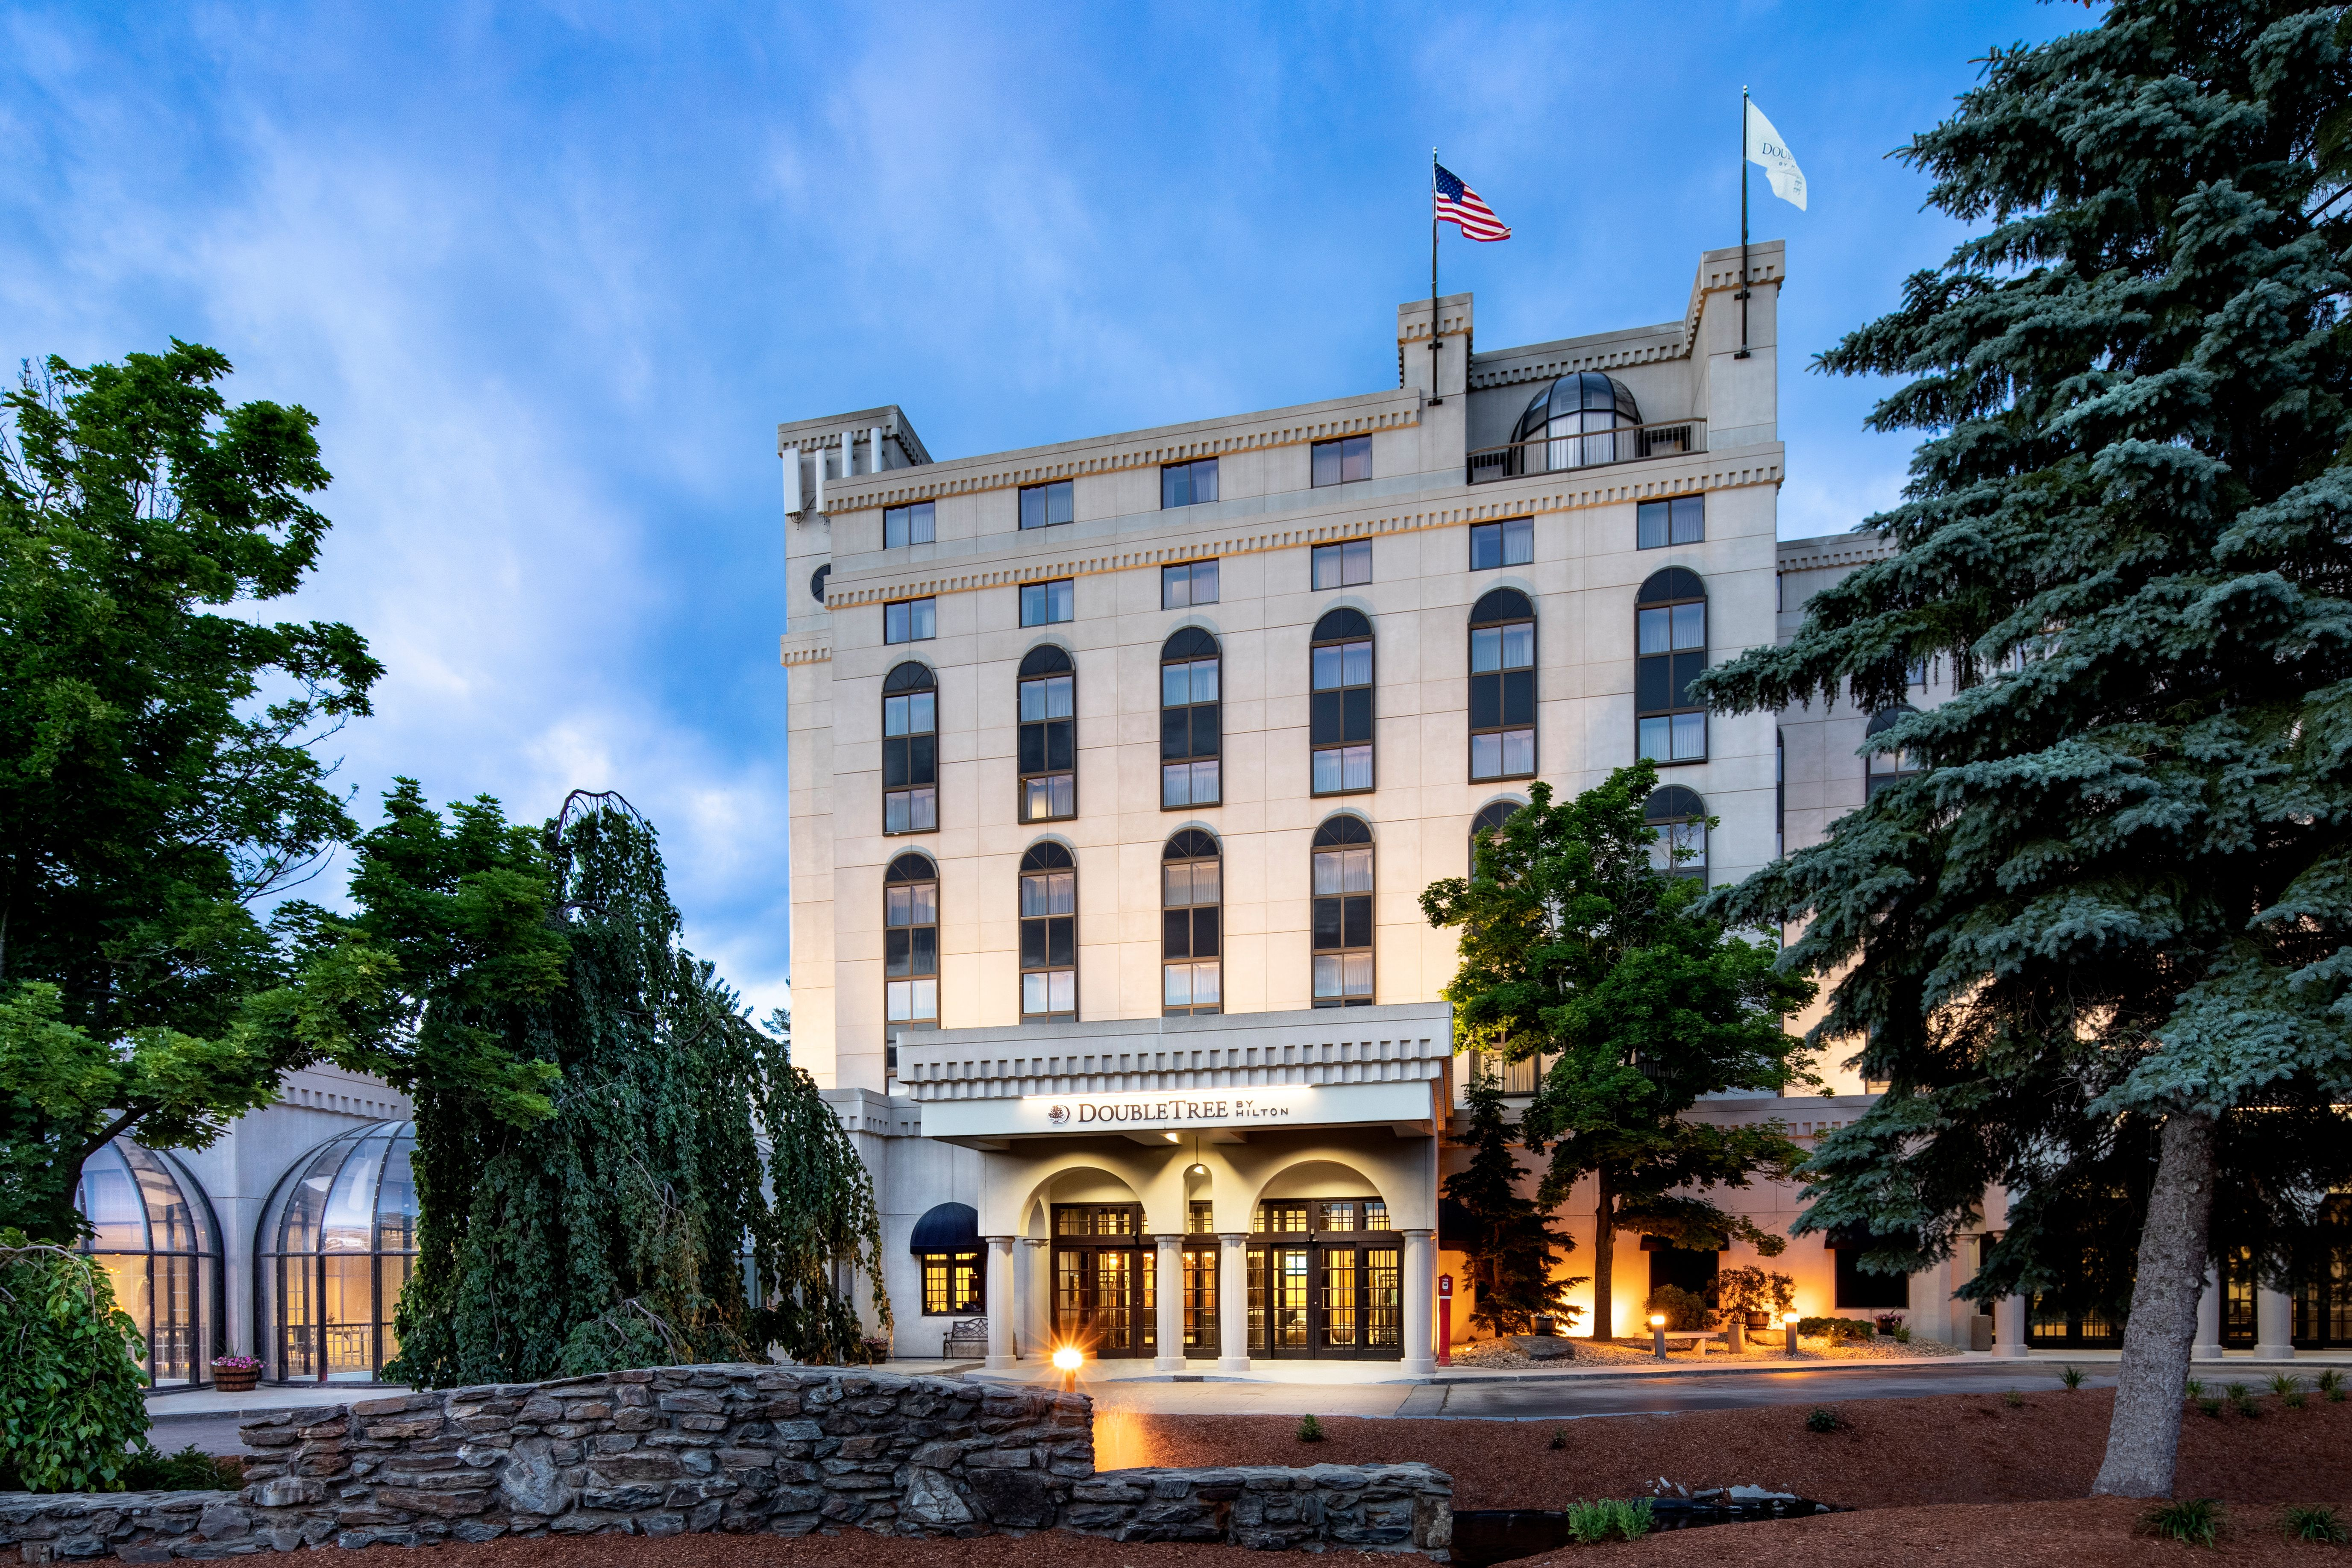 Pin By Dt Nashua Weddings On Our Hotel With Images Hotel Nh